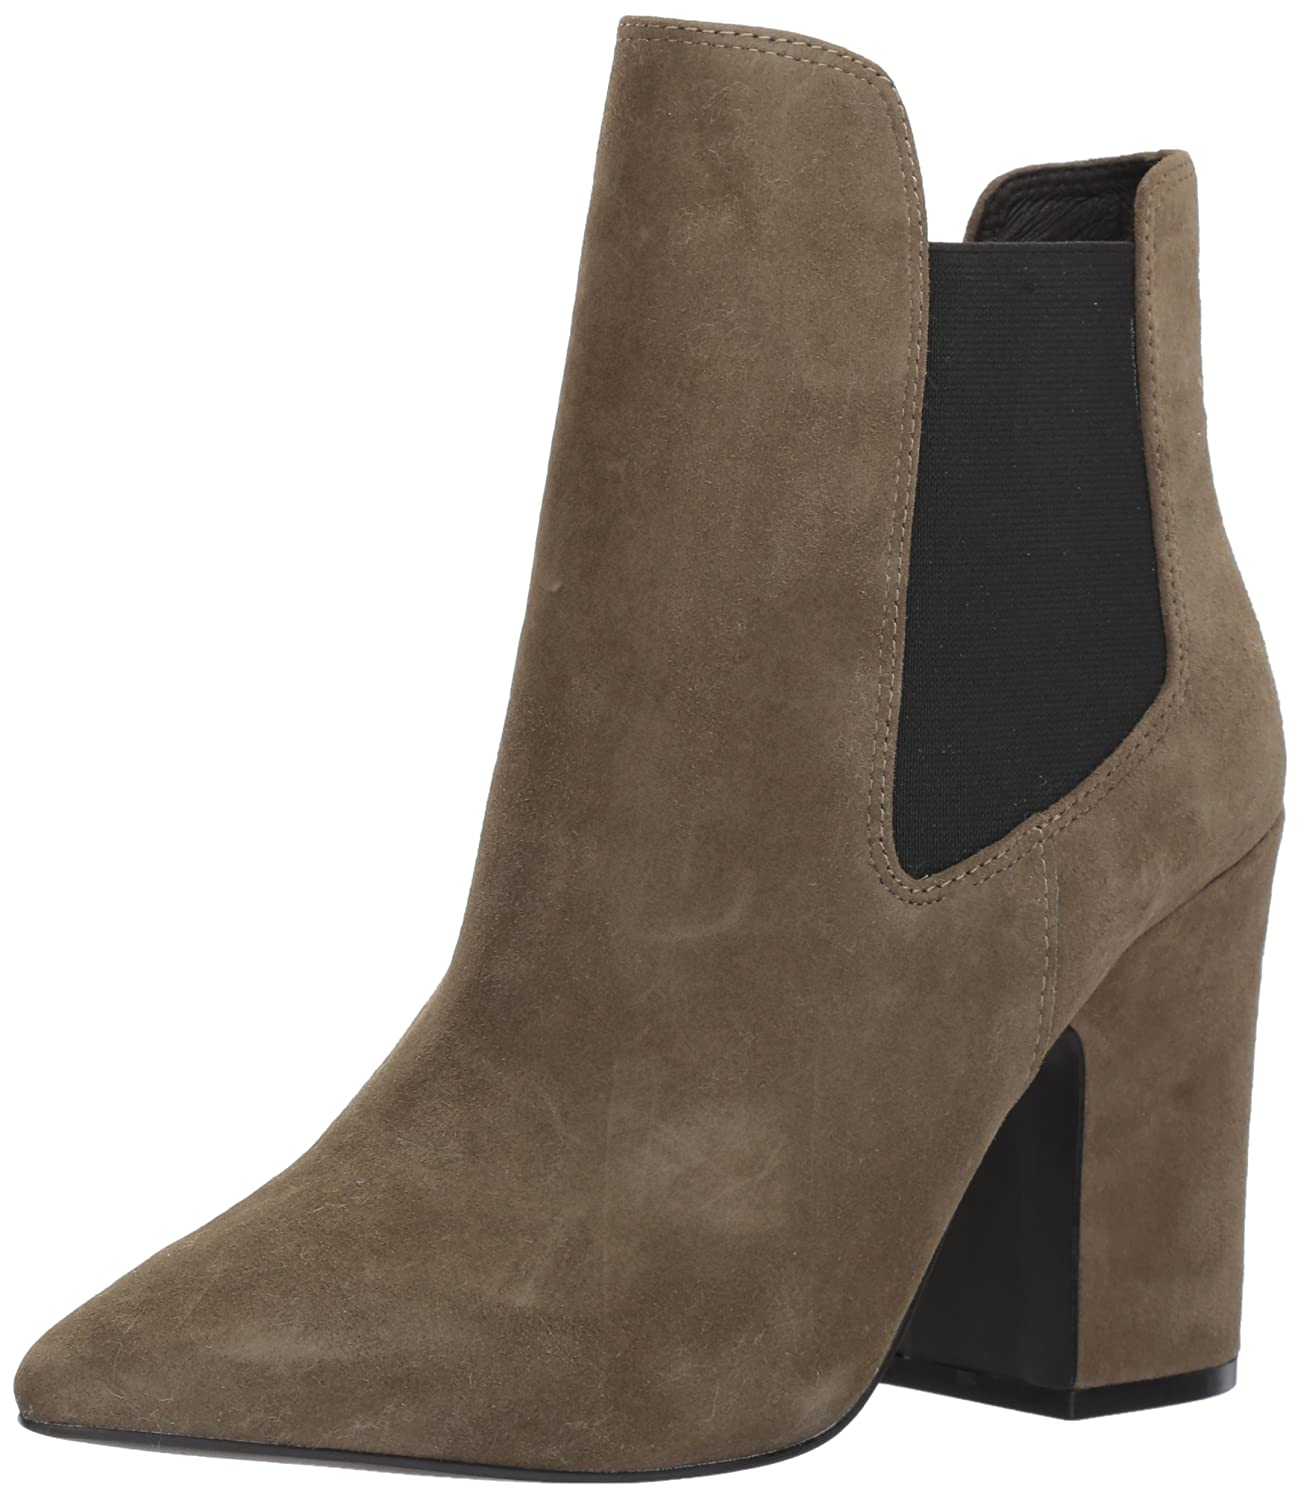 Chinese Laundry Kristin Cavallari Women's Starlight Ankle Bootie B071HTDQRG 7.5 B(M) US|Olive Suede